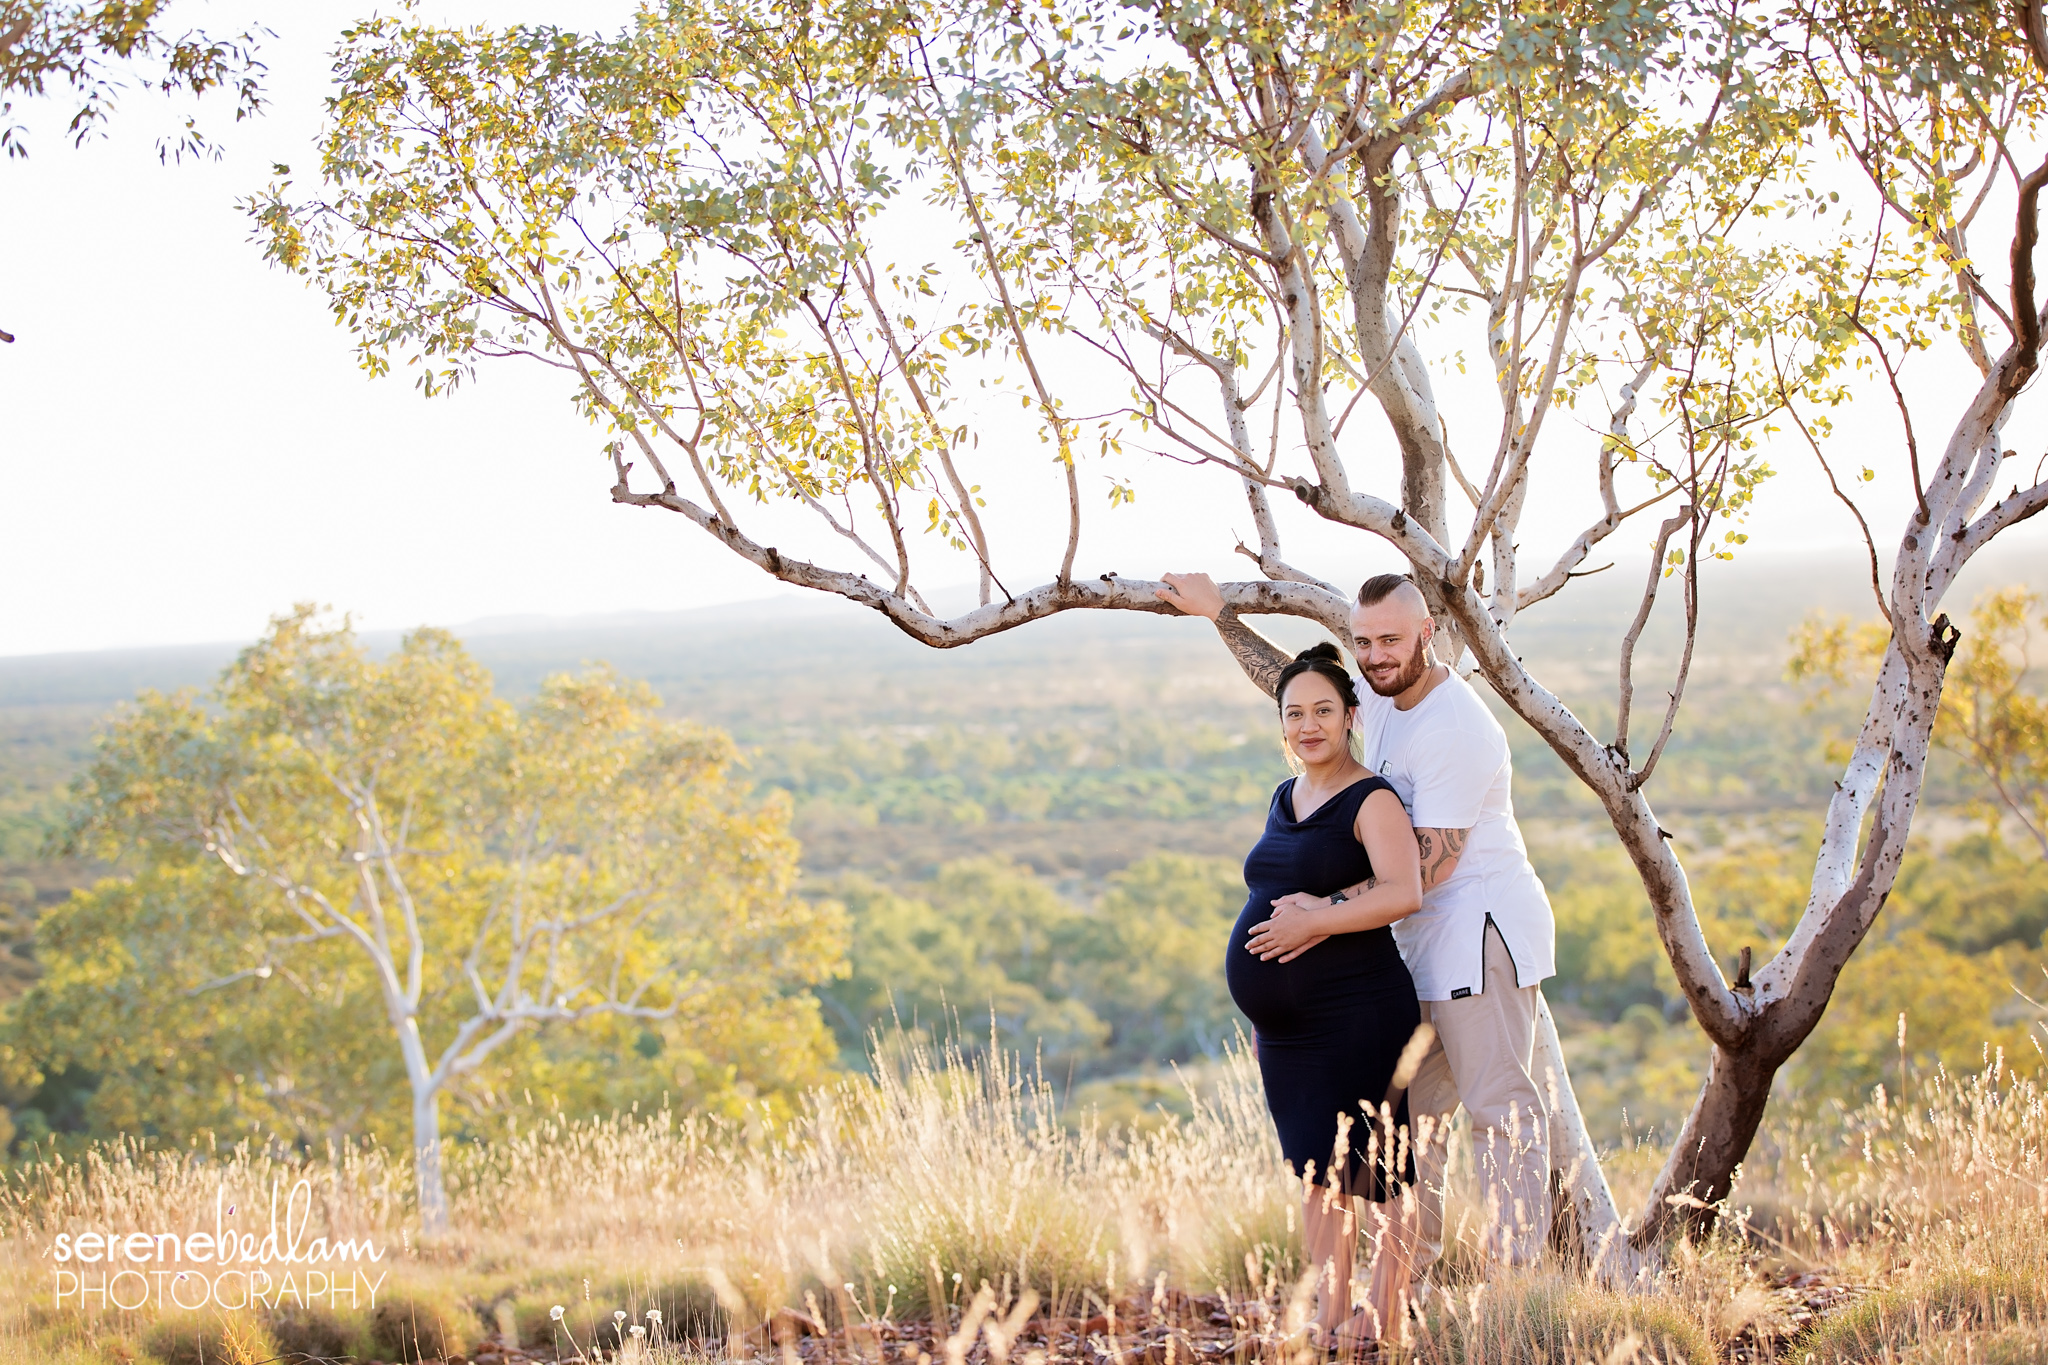 Pilbara Maternity Photography - Samantha - Serene Bedlam